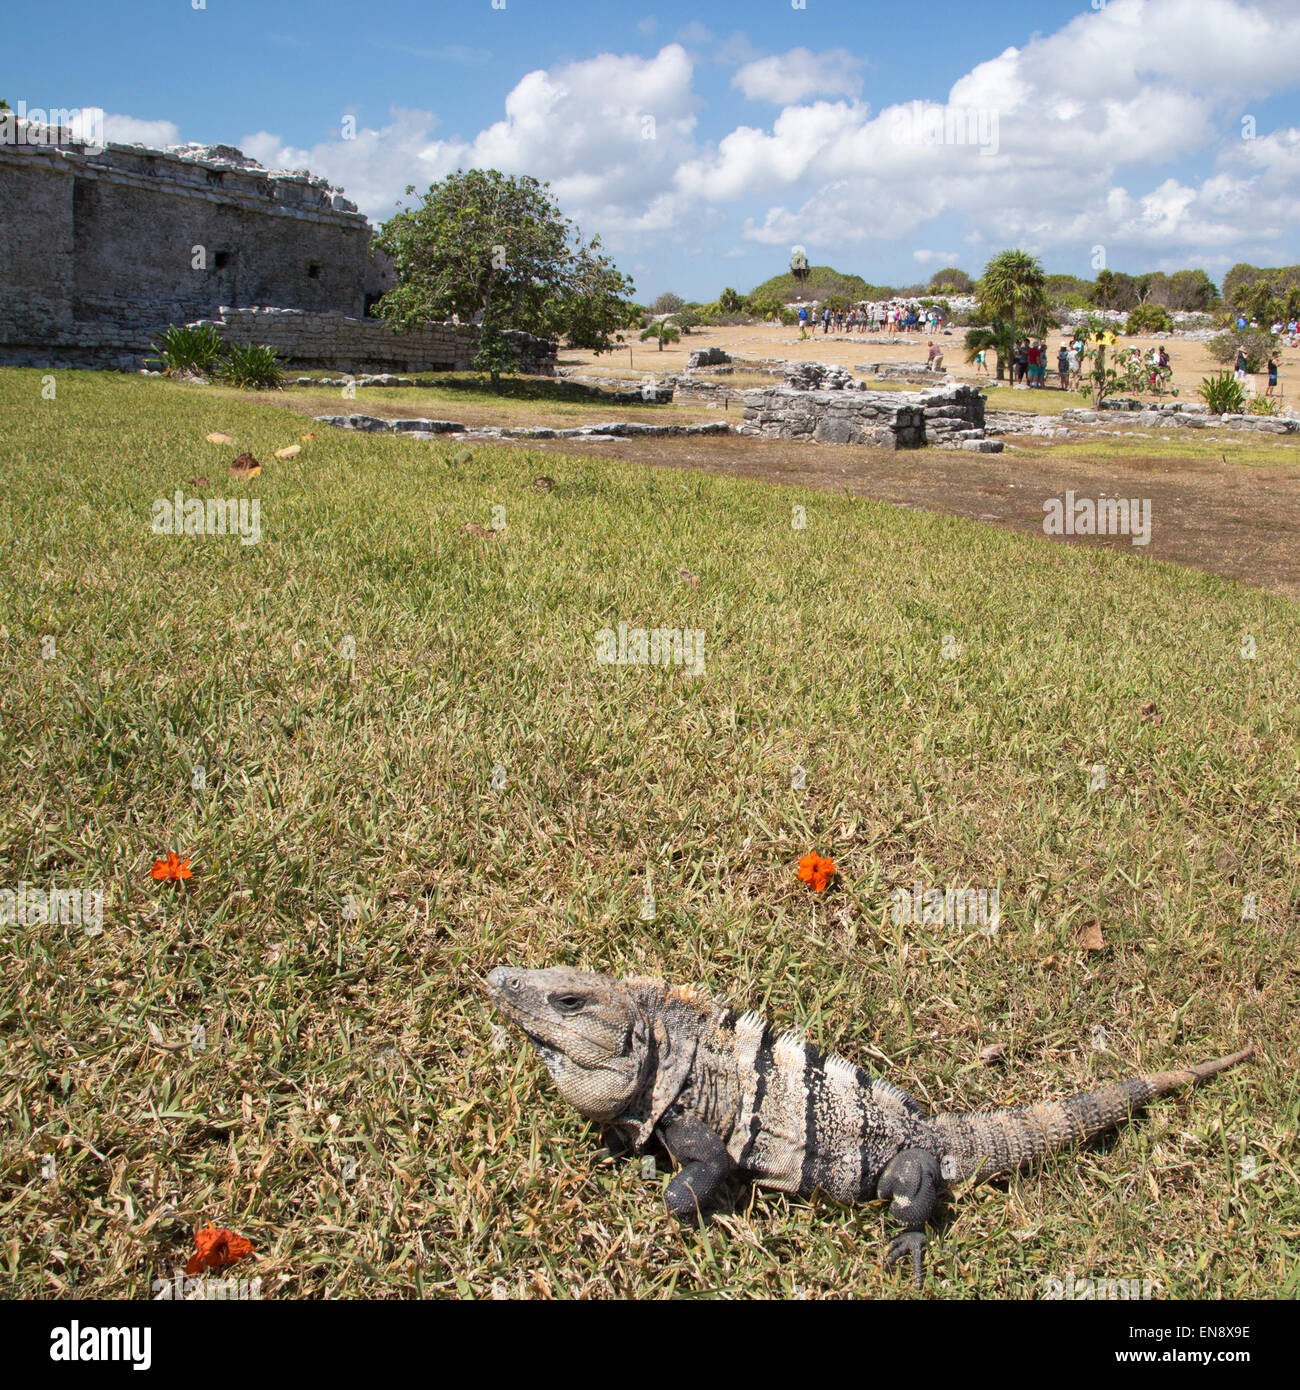 Black Spiny-tailed Iguana (Ctenosaura similis) basking at Tulum, a Pre-Columbian Mayan archaeological site on the - Stock Image